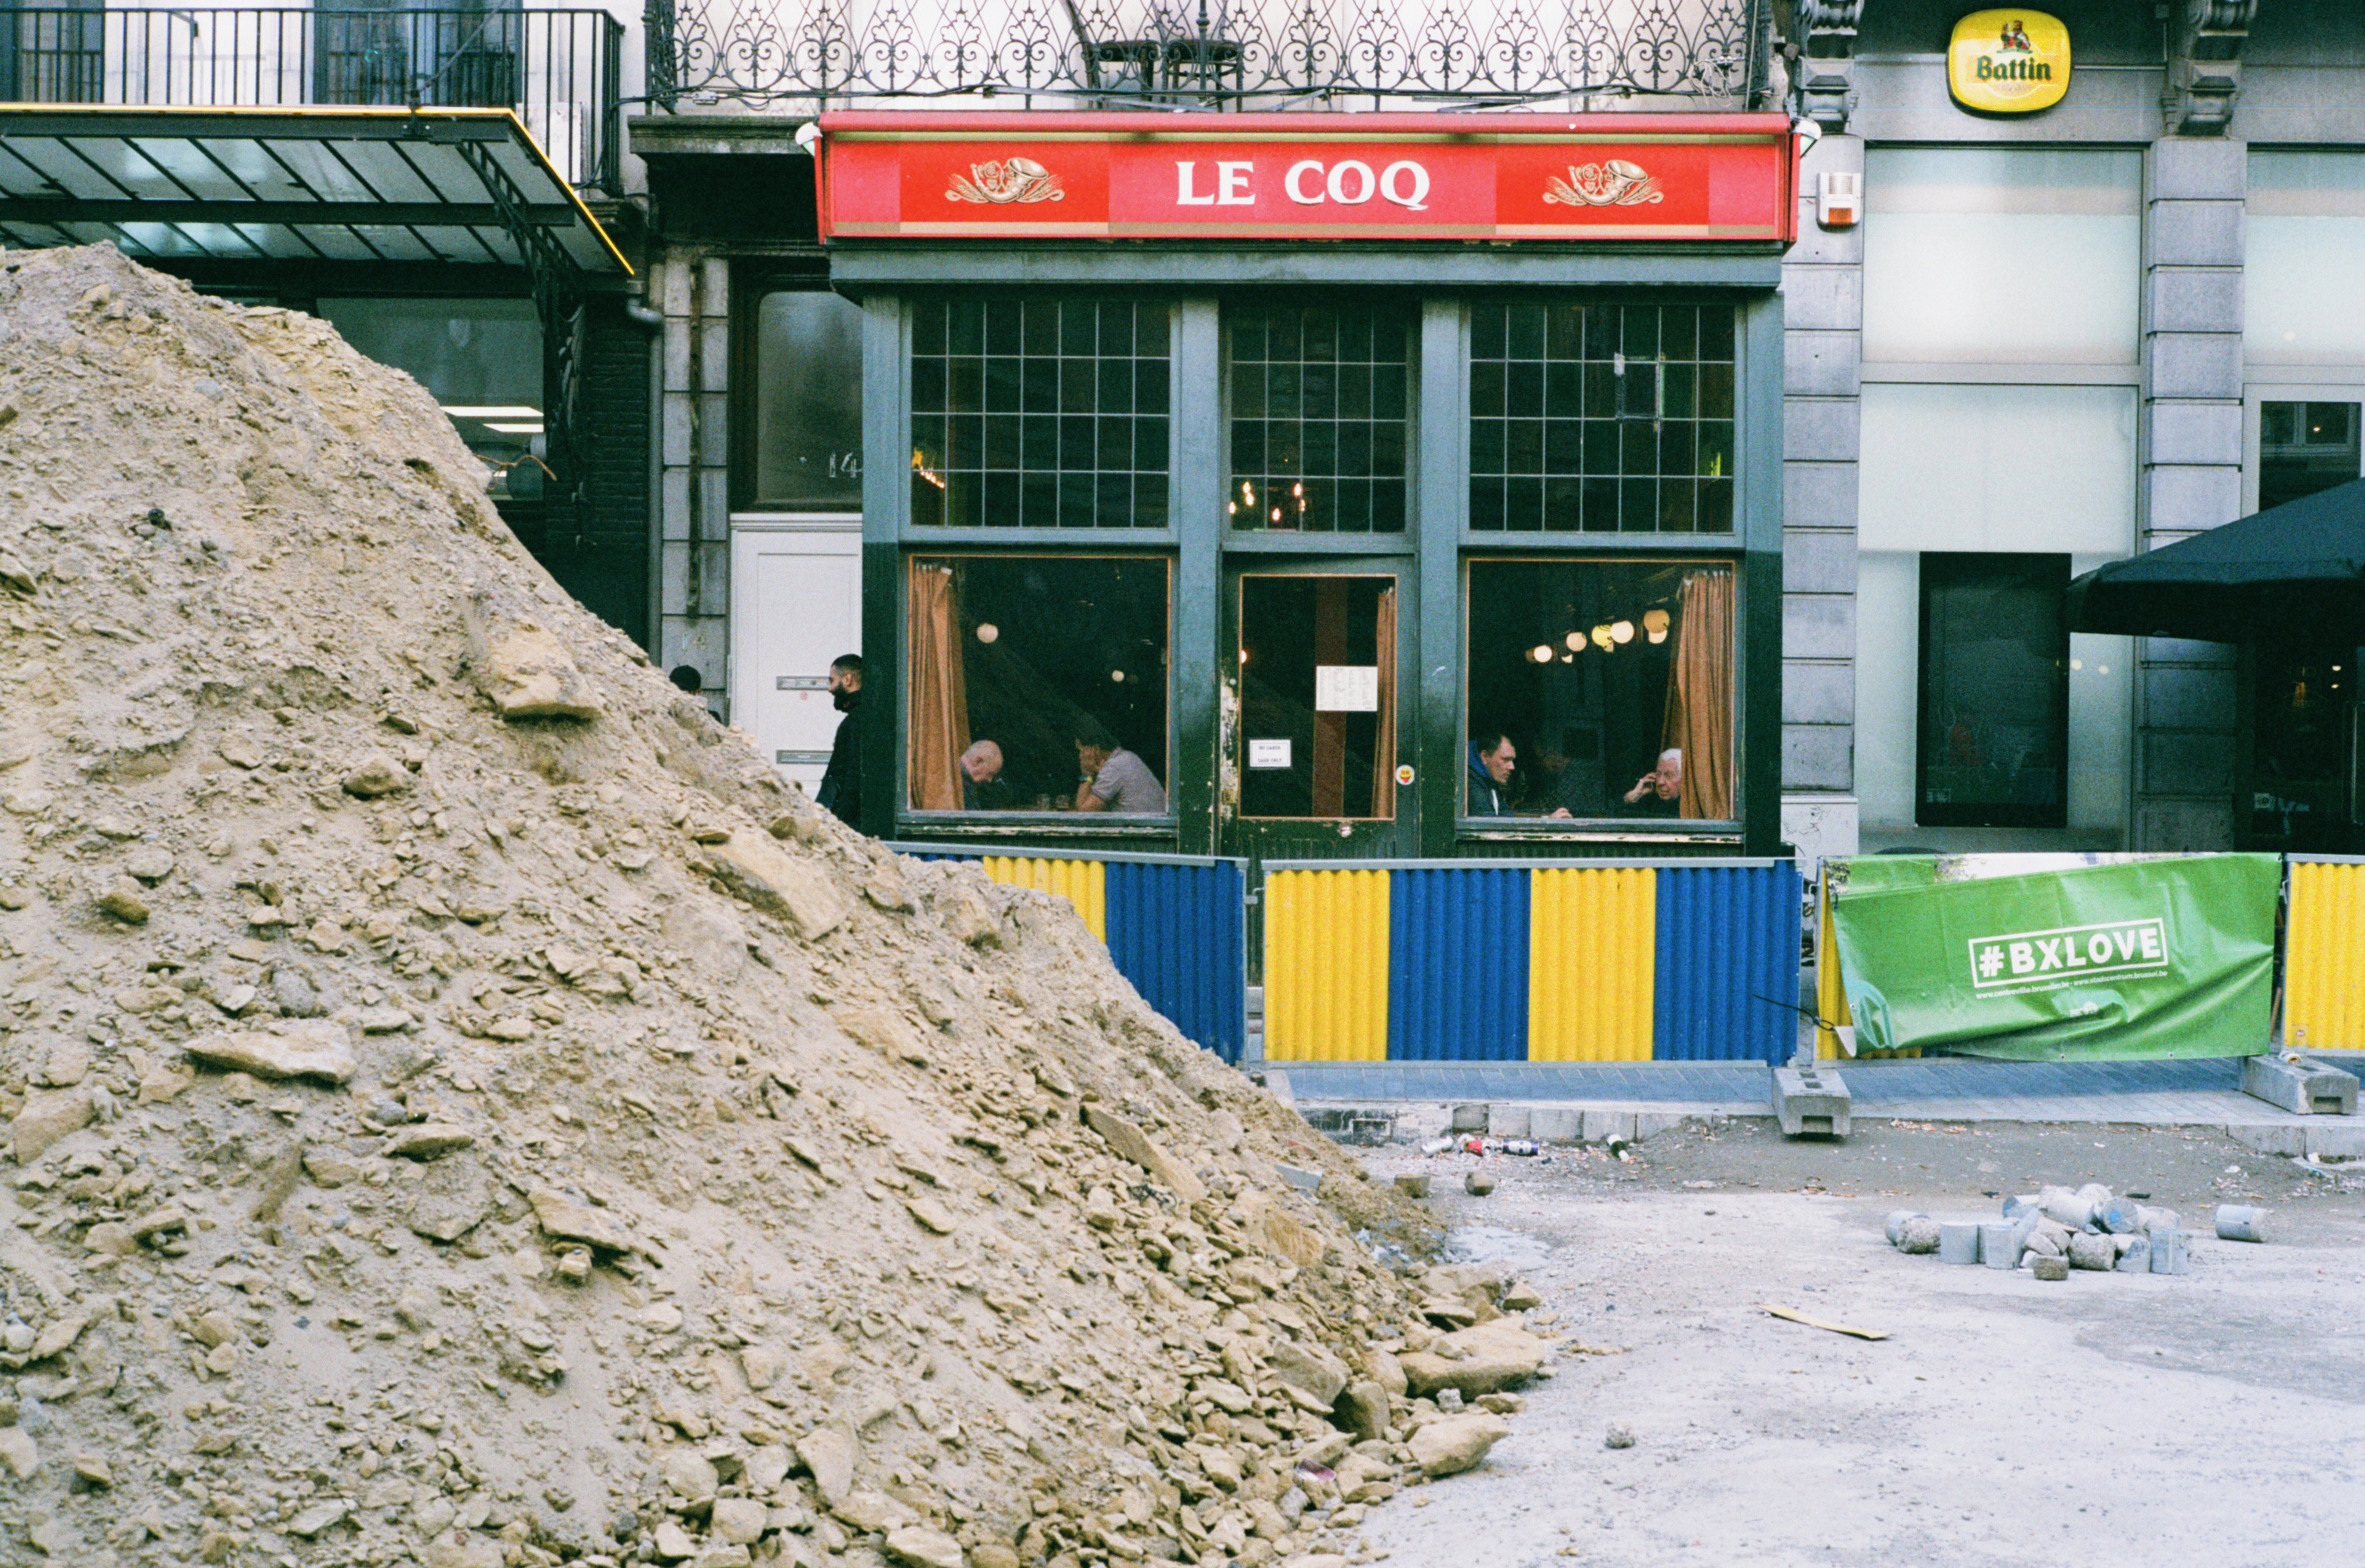 Le coq, a local pub in Brussels. During the construction works